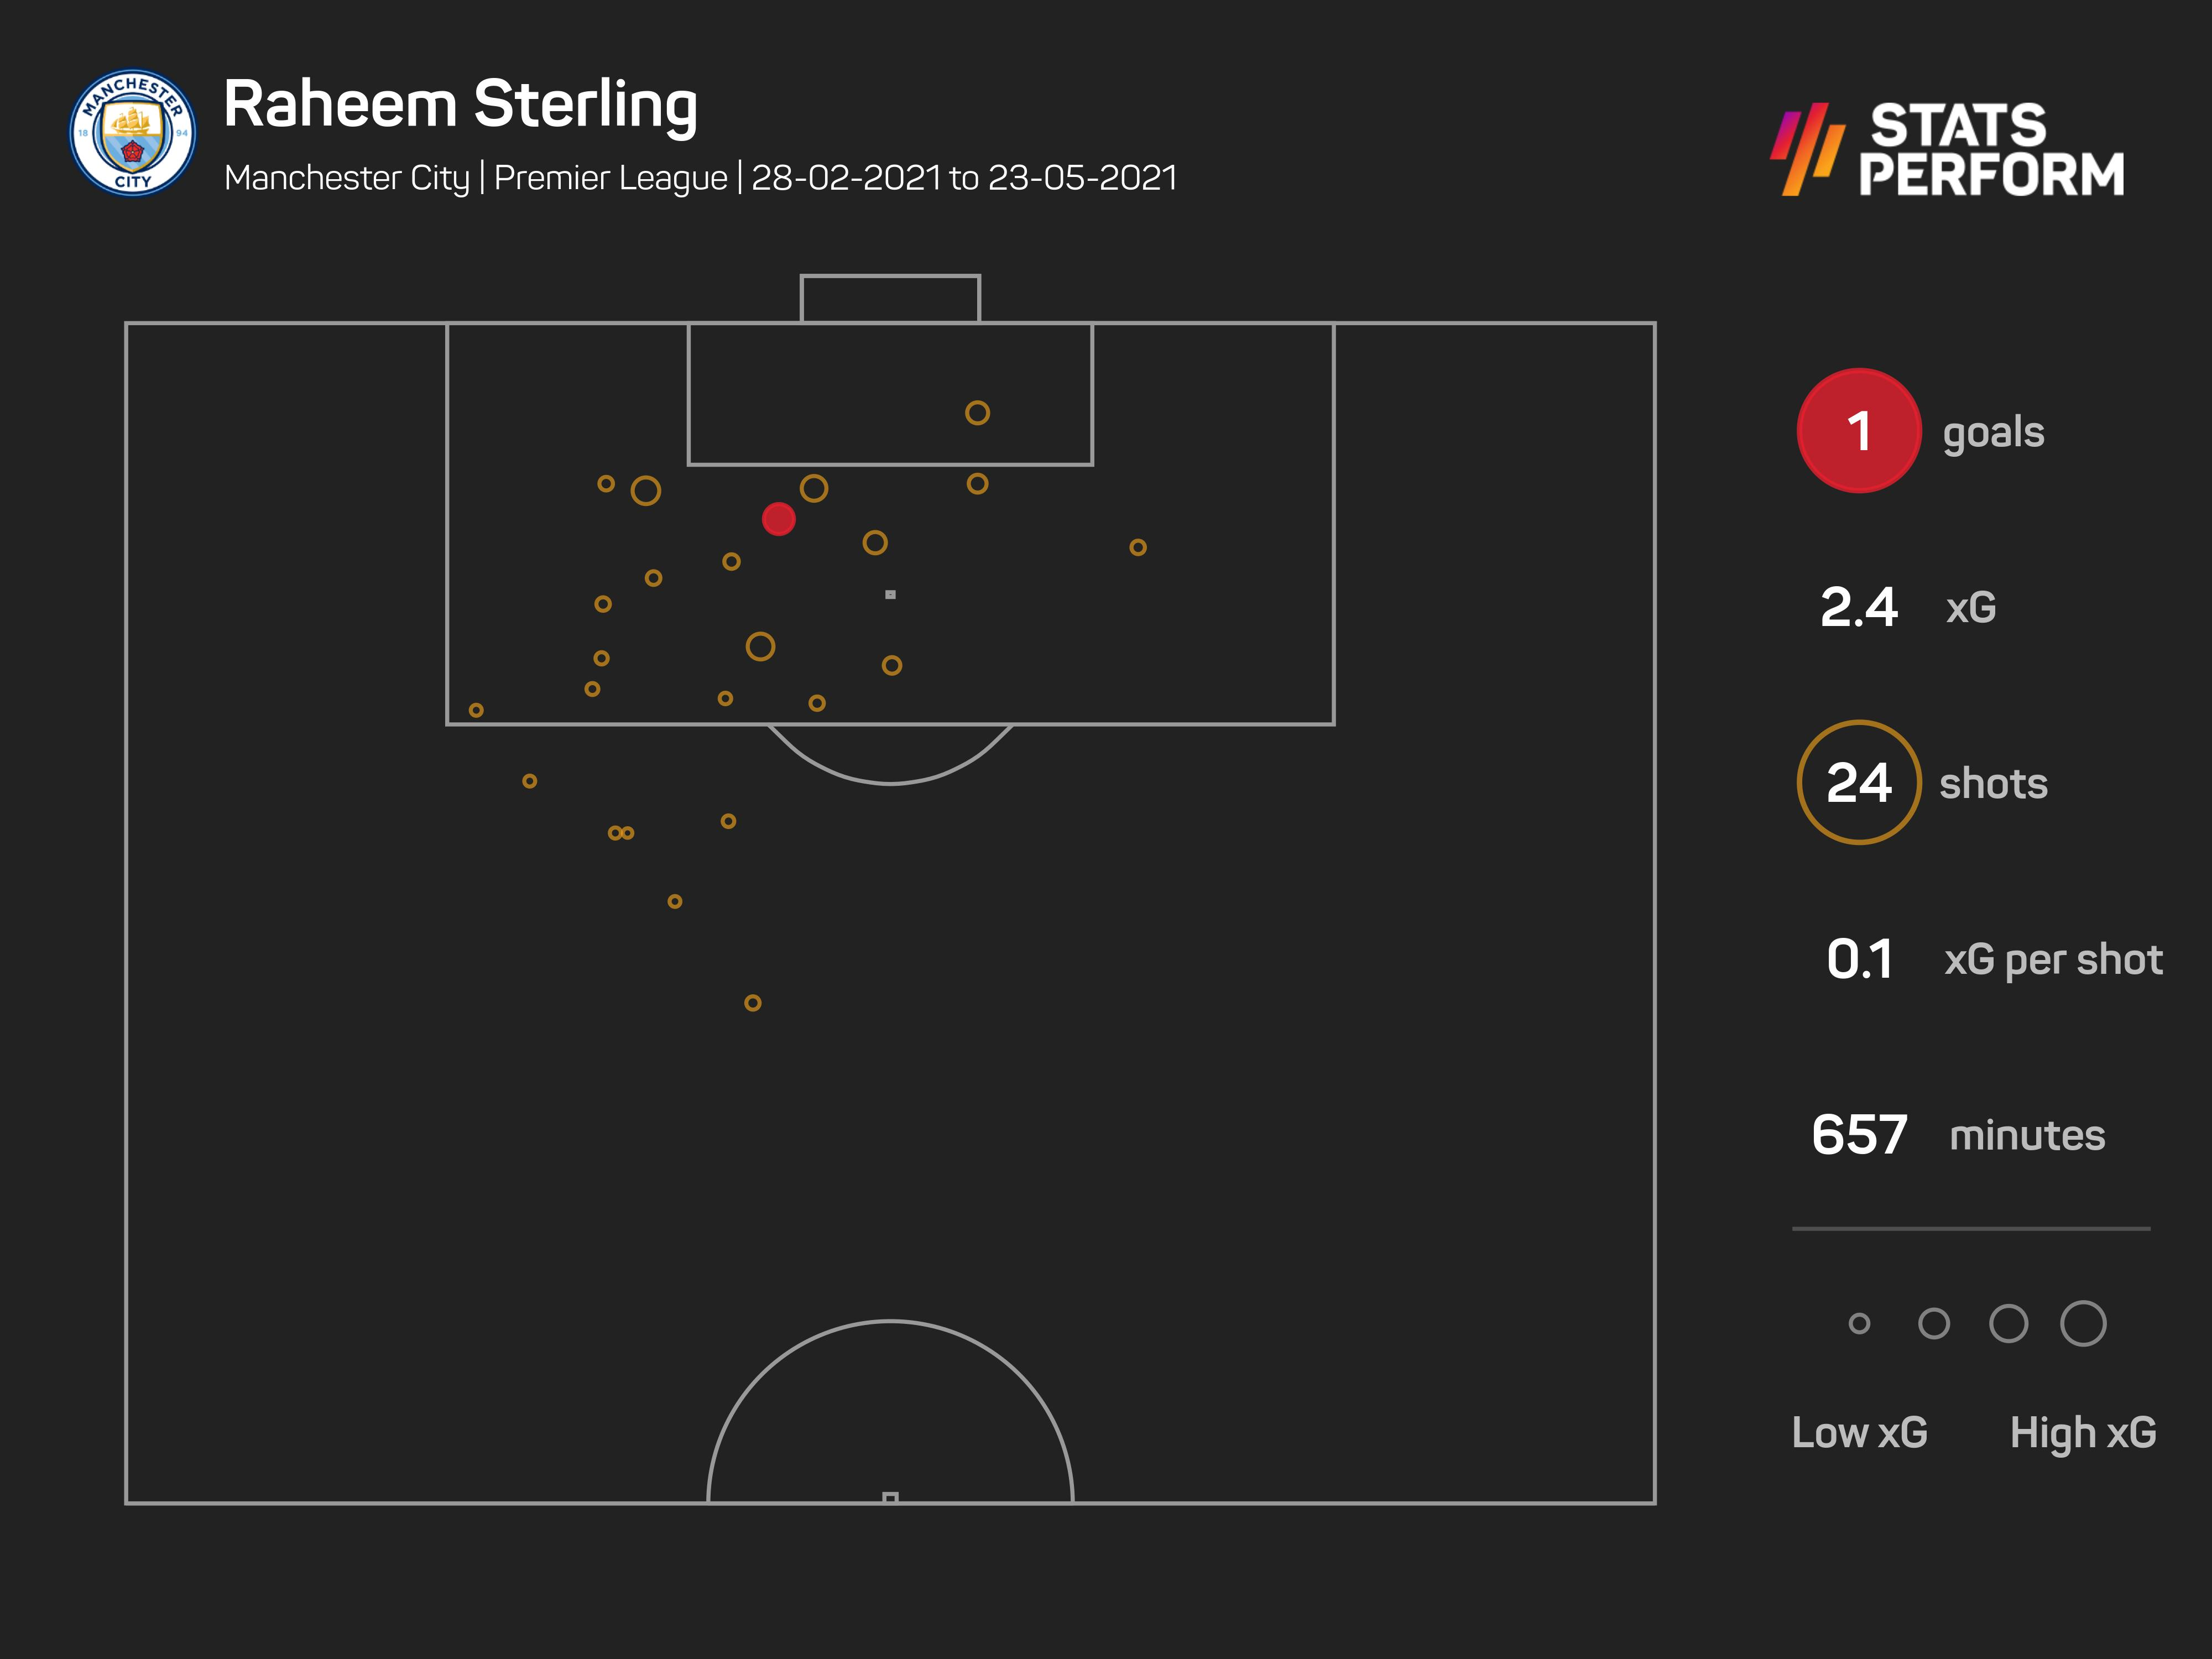 Raheem Sterling expected goals February-May 2021